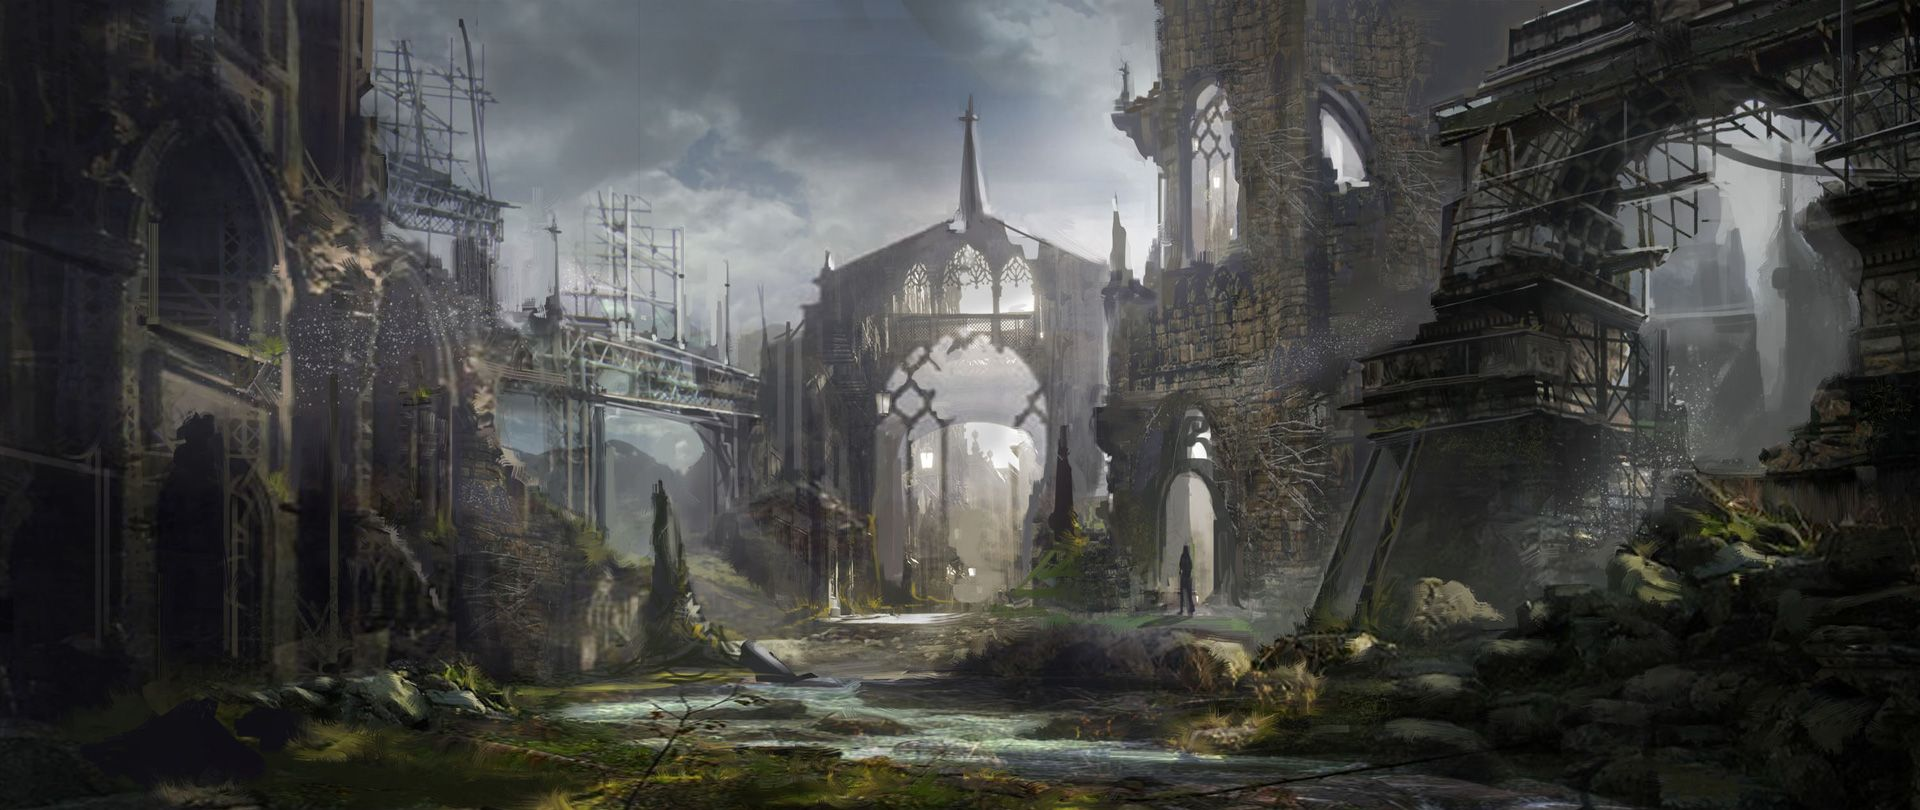 art of city ruins | cathedral-in-keats | Coolvibe ...